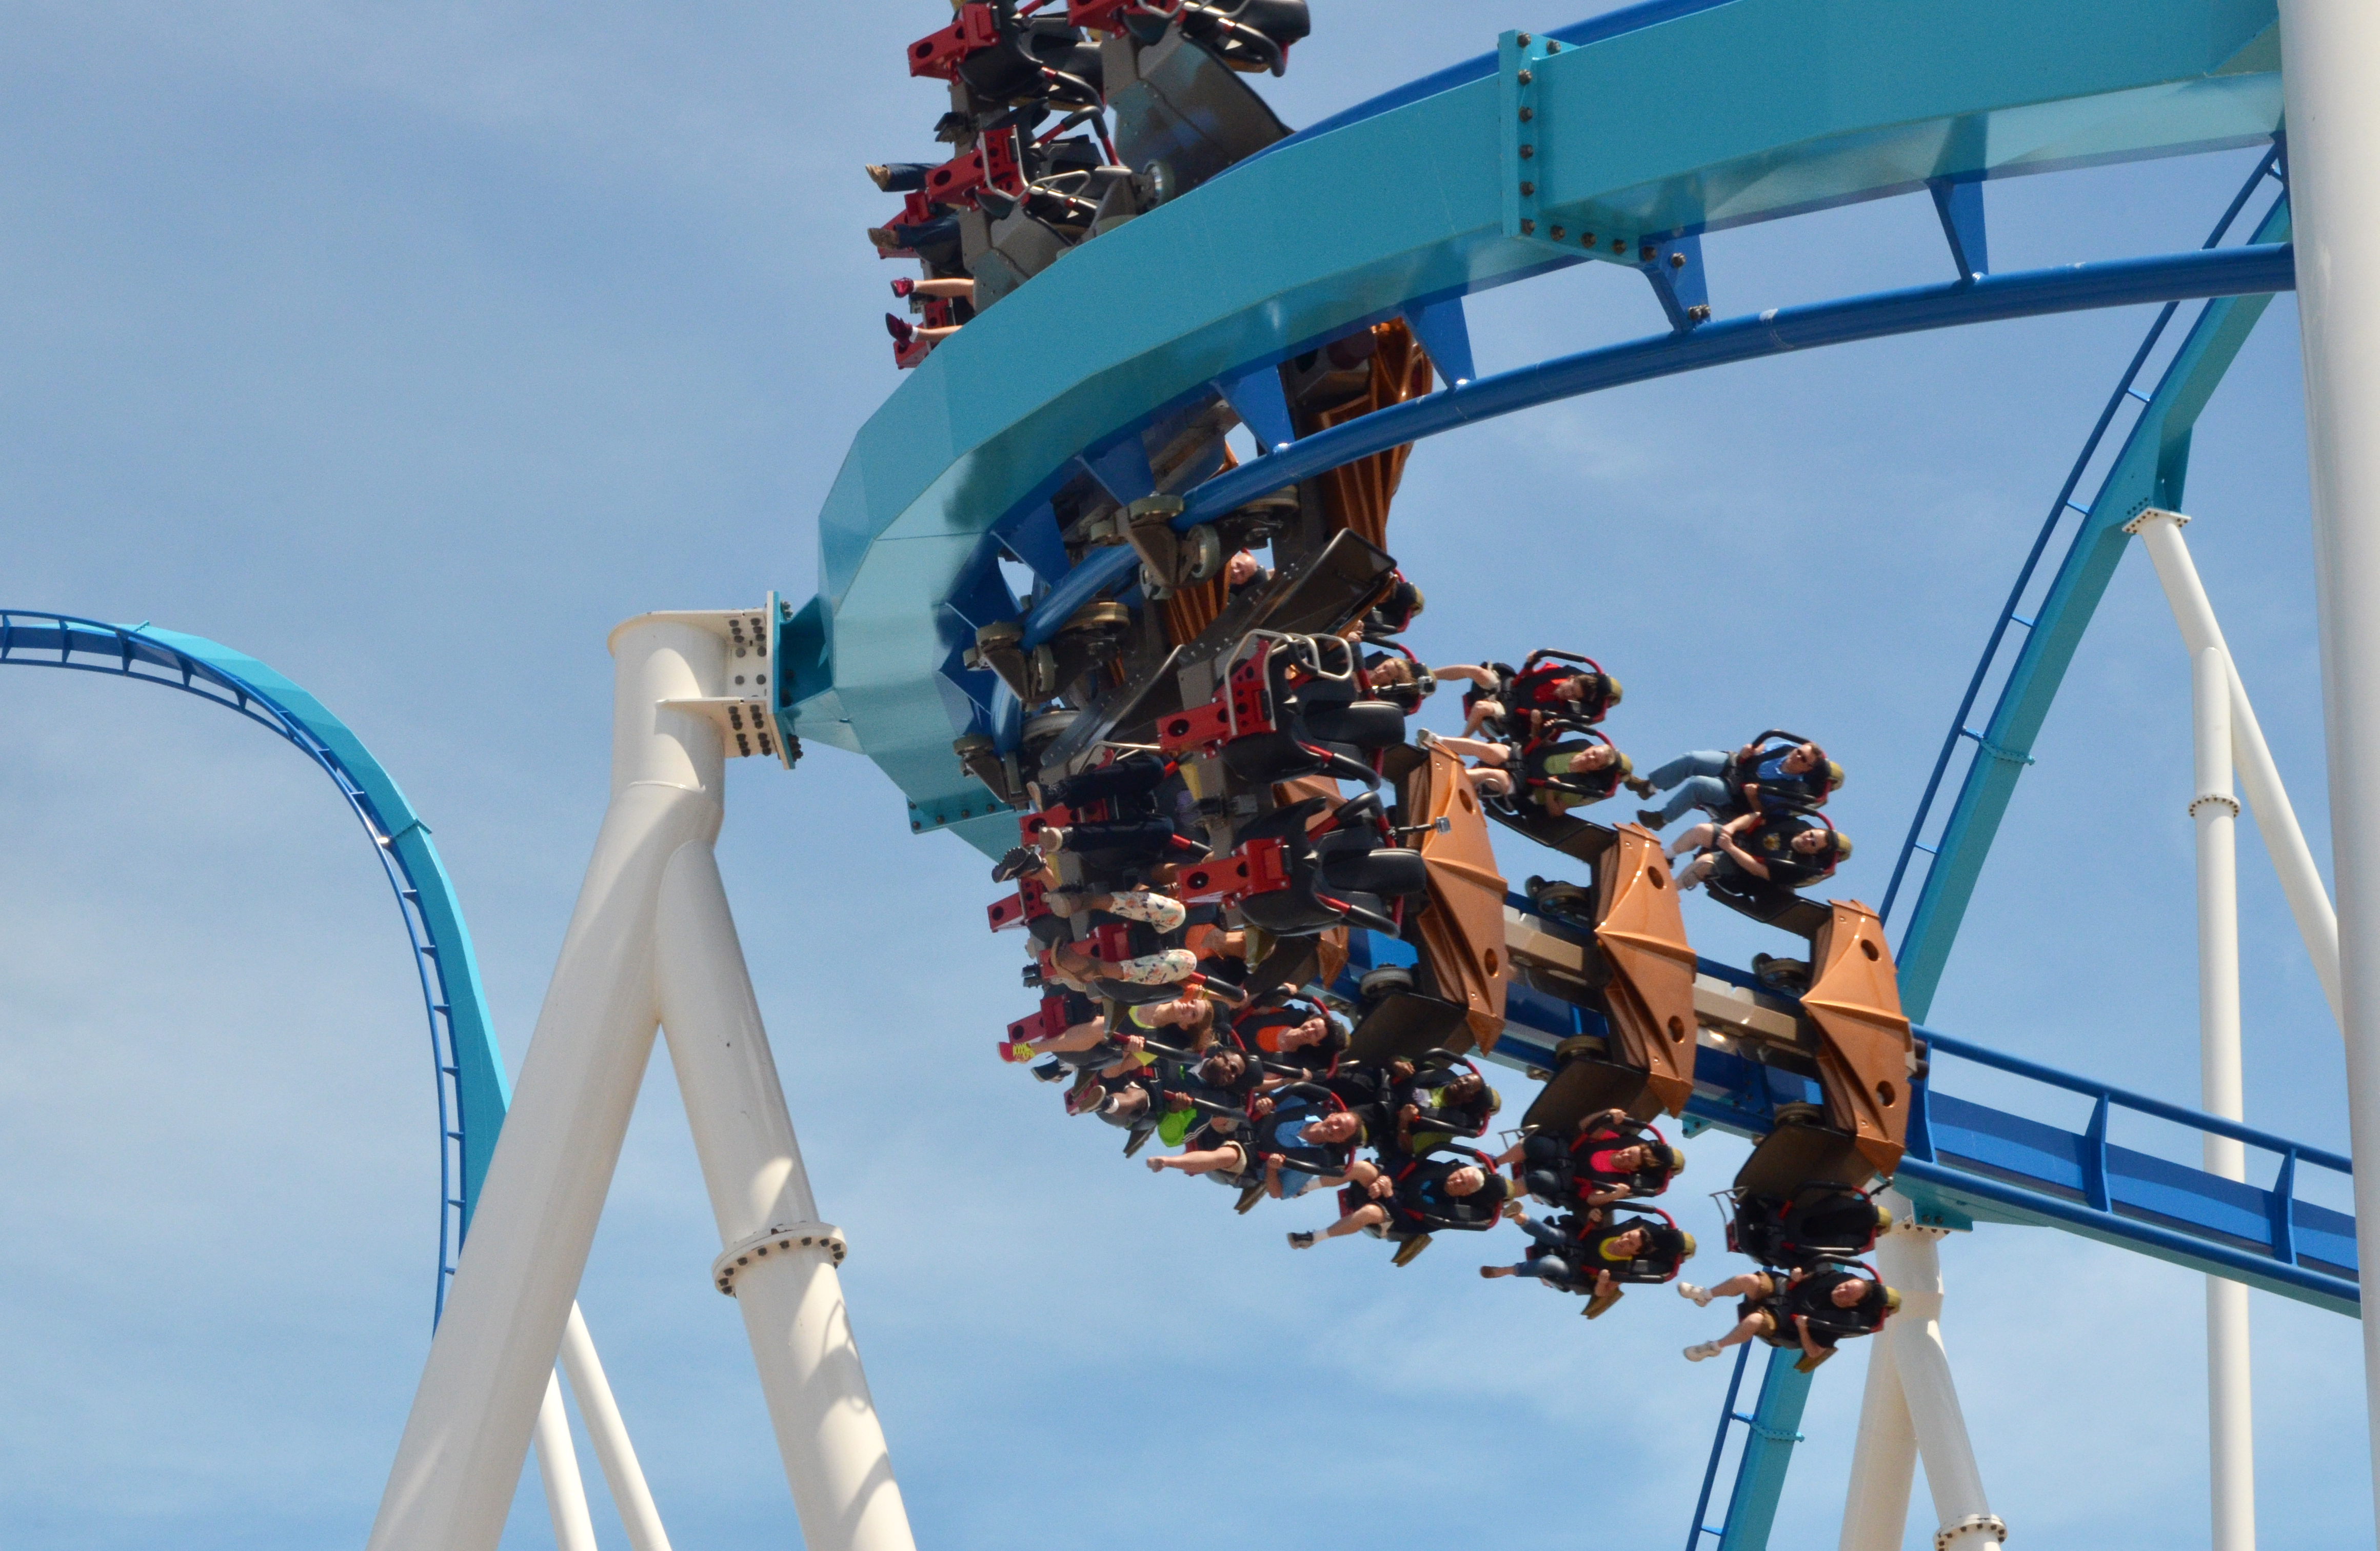 New rollercoaster opens soon at Cedar Point